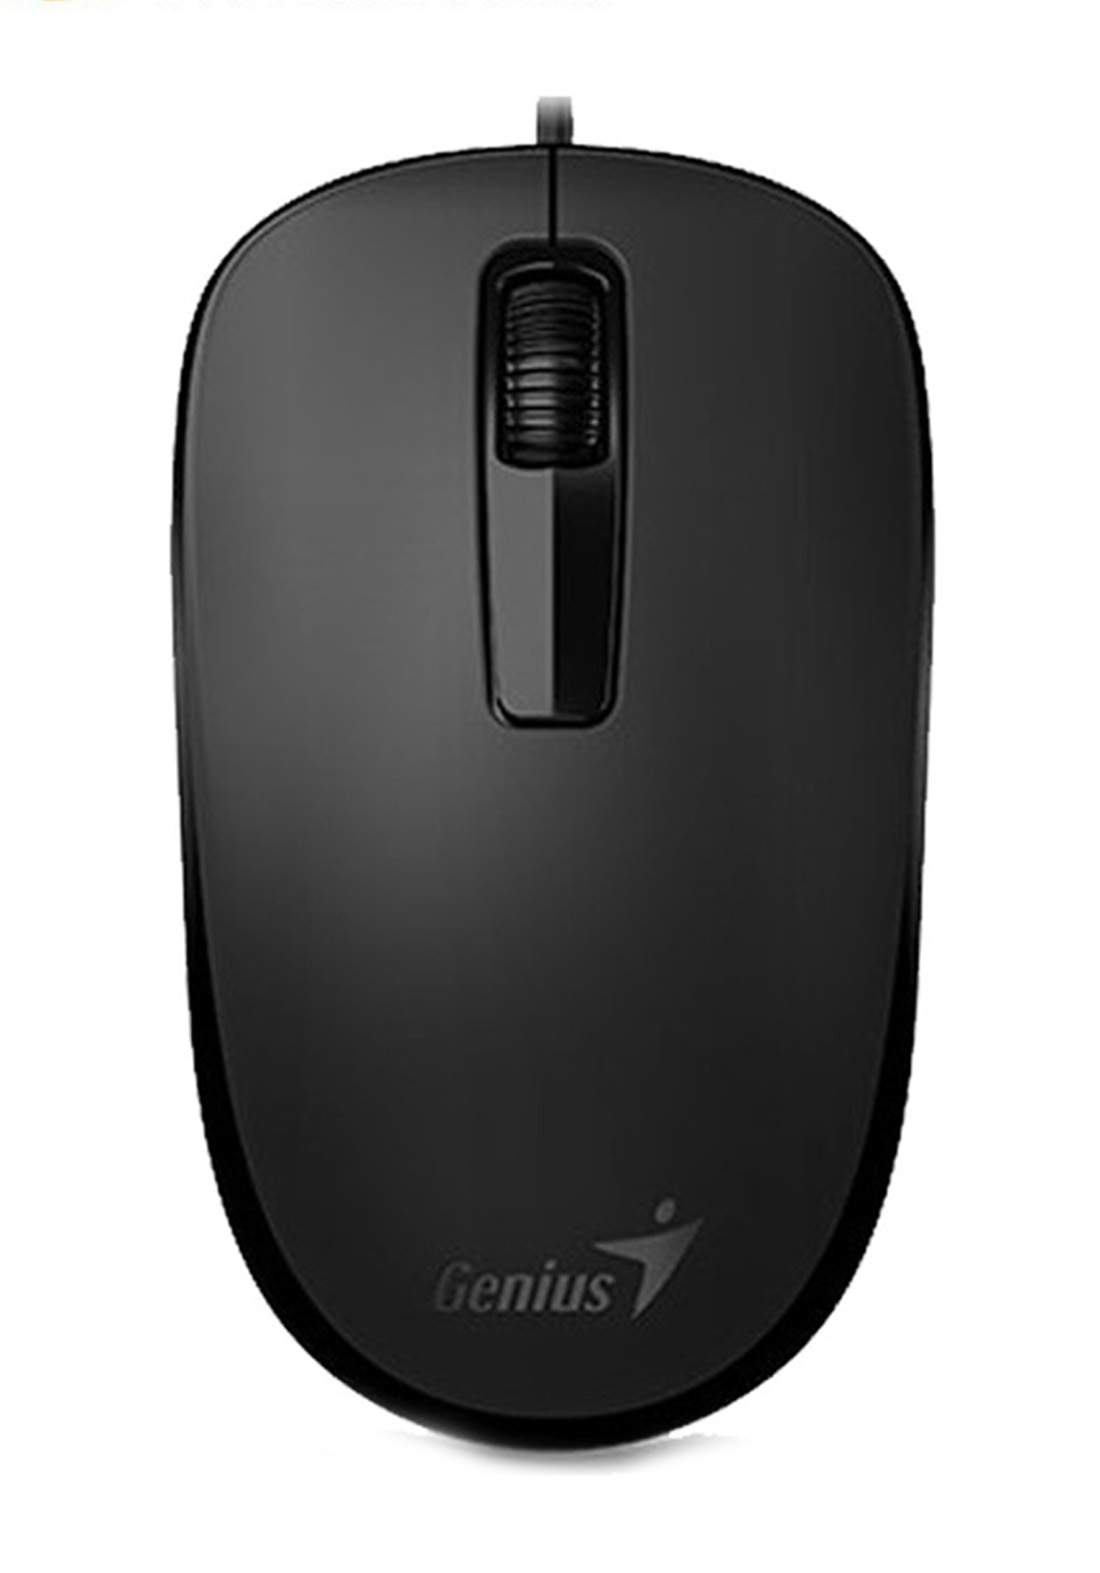 Genius DX-125 Wired Mouse - Black ماوس